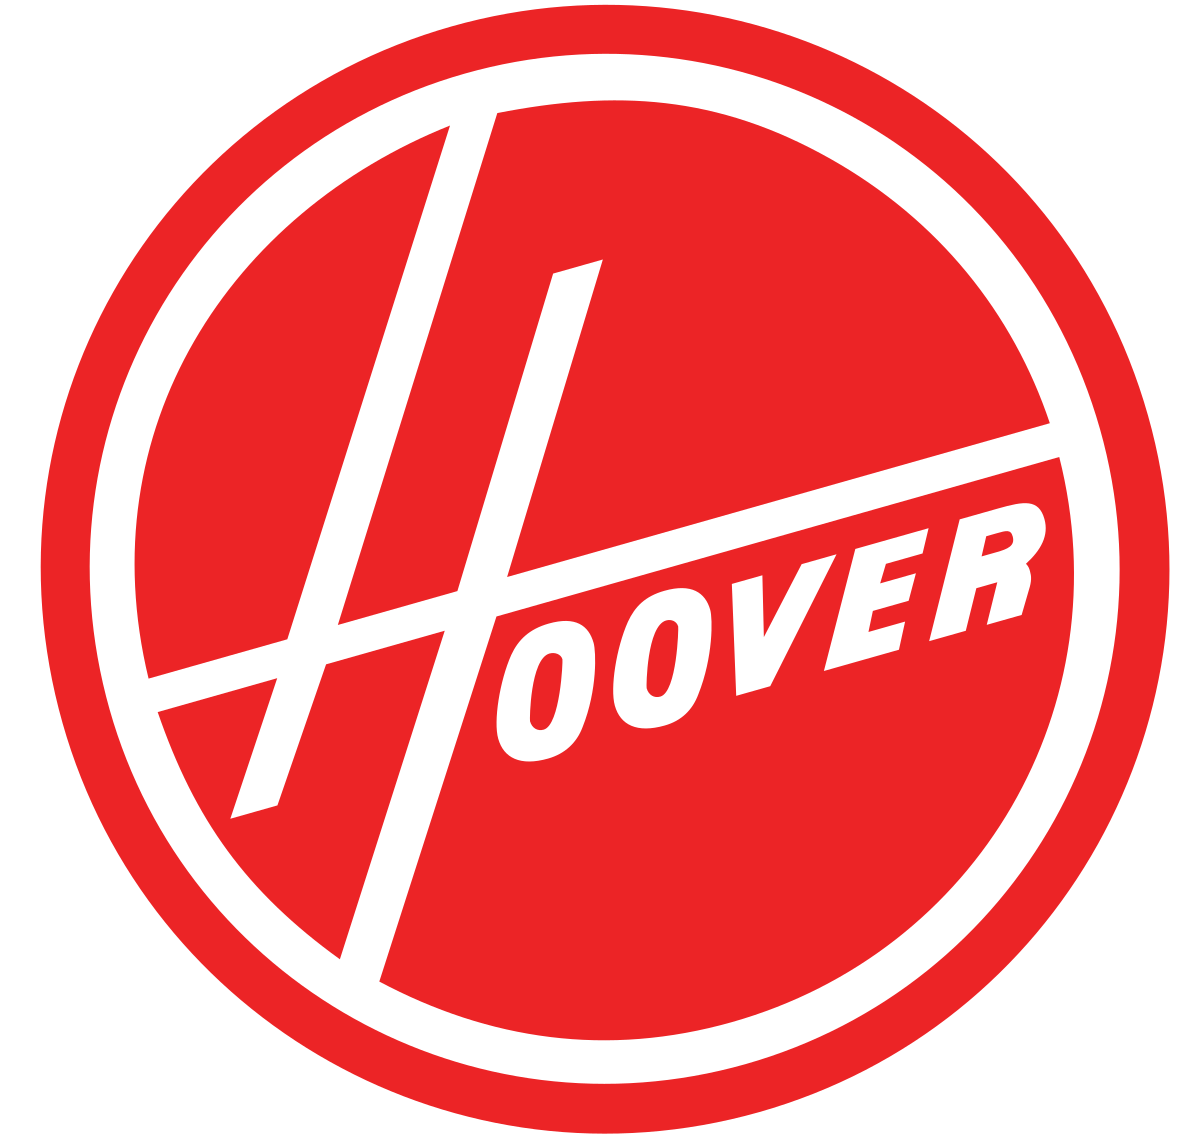 Hoover - hoover.com